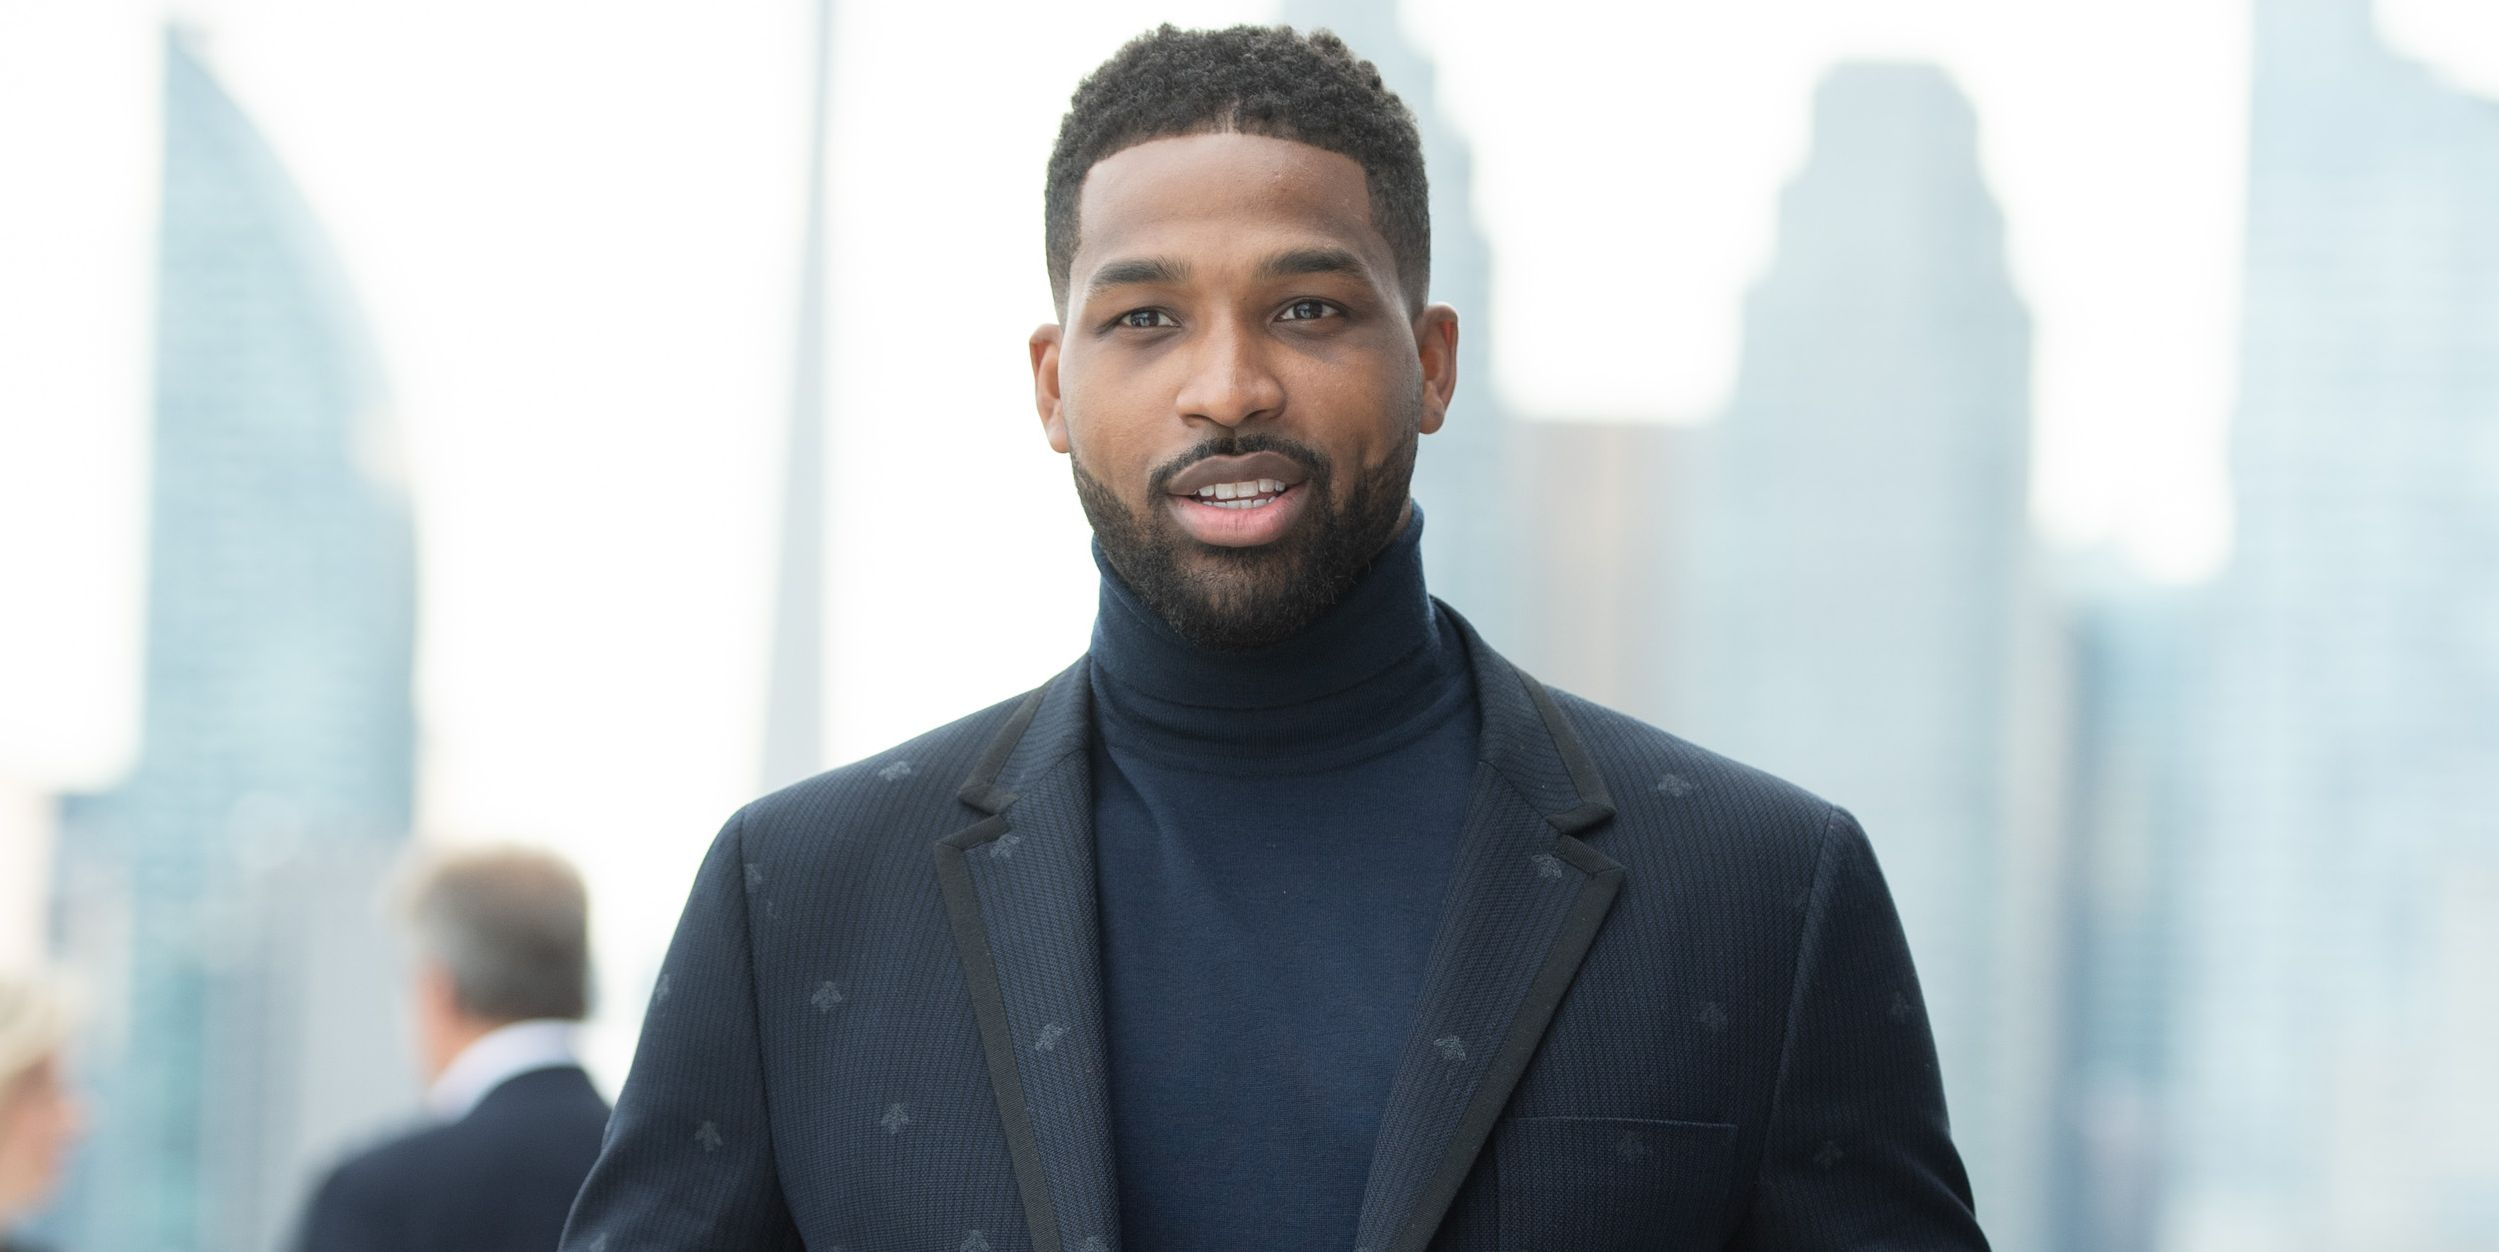 A Source Just Exposed Tristan Thompson's Latest Hookups with Instagram Models